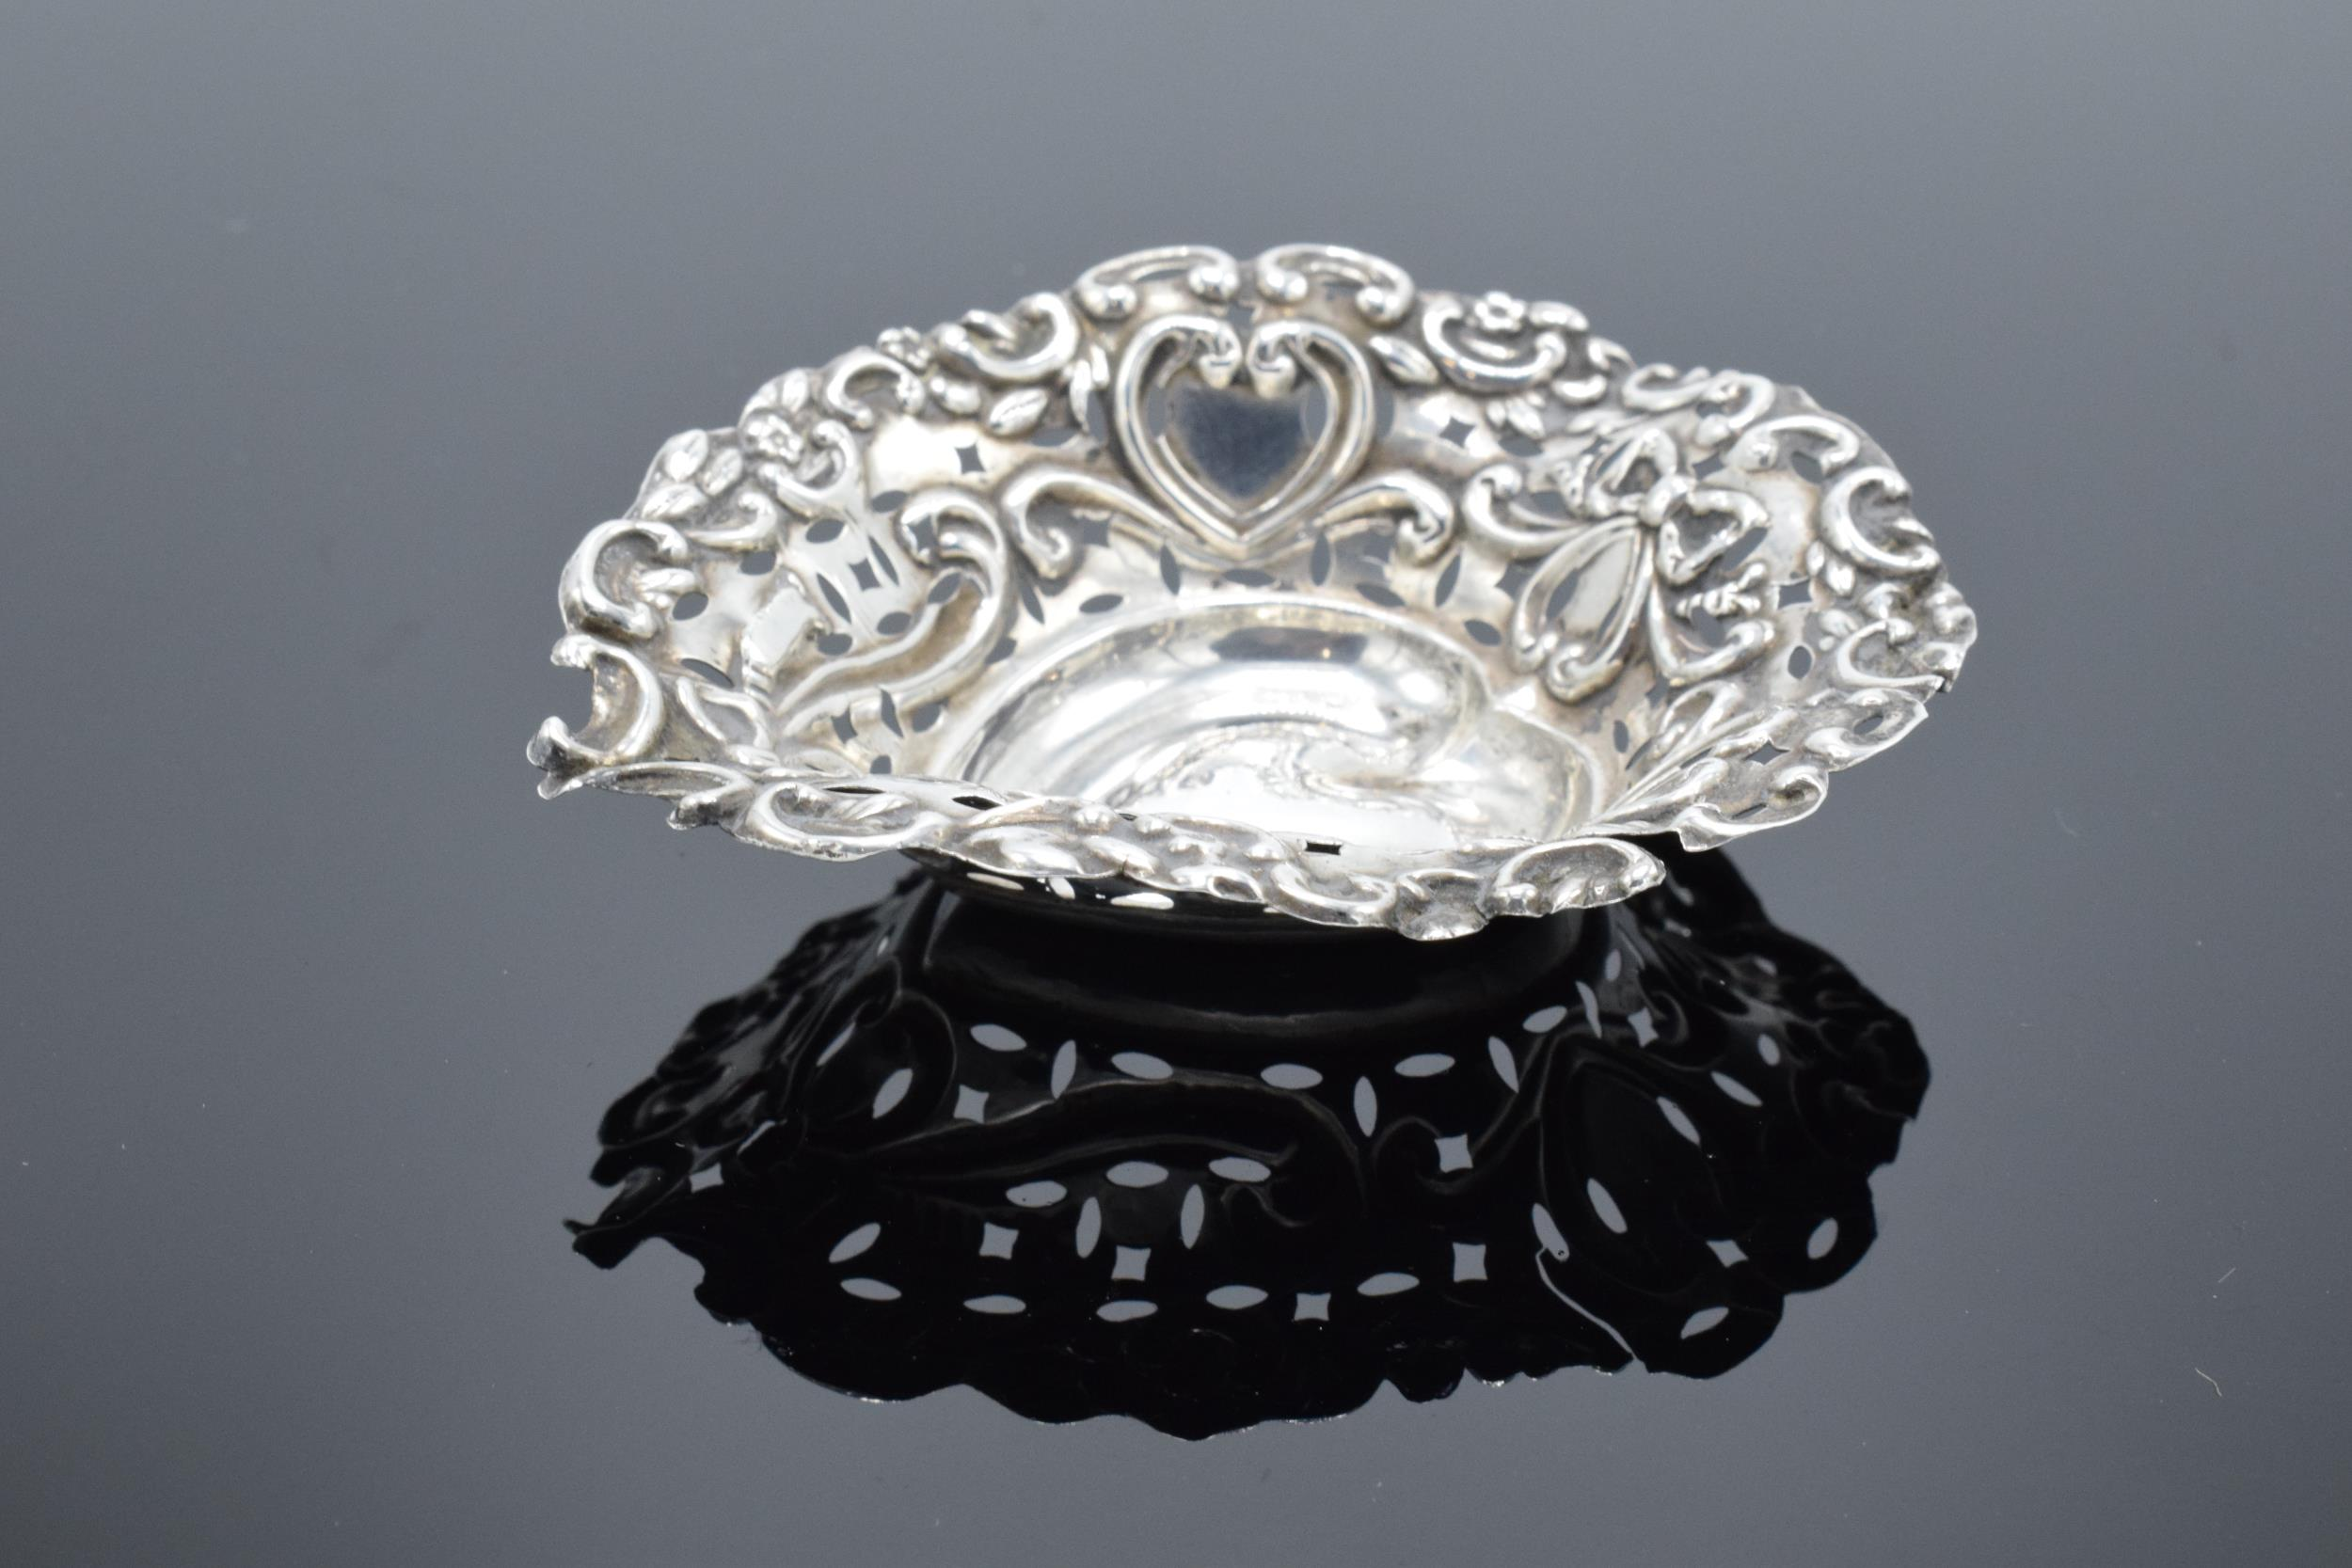 An ornate silver sweet dish/ small tray Birmingham 1900. 9cm by 7cm. 11.9 grams. - Image 3 of 6